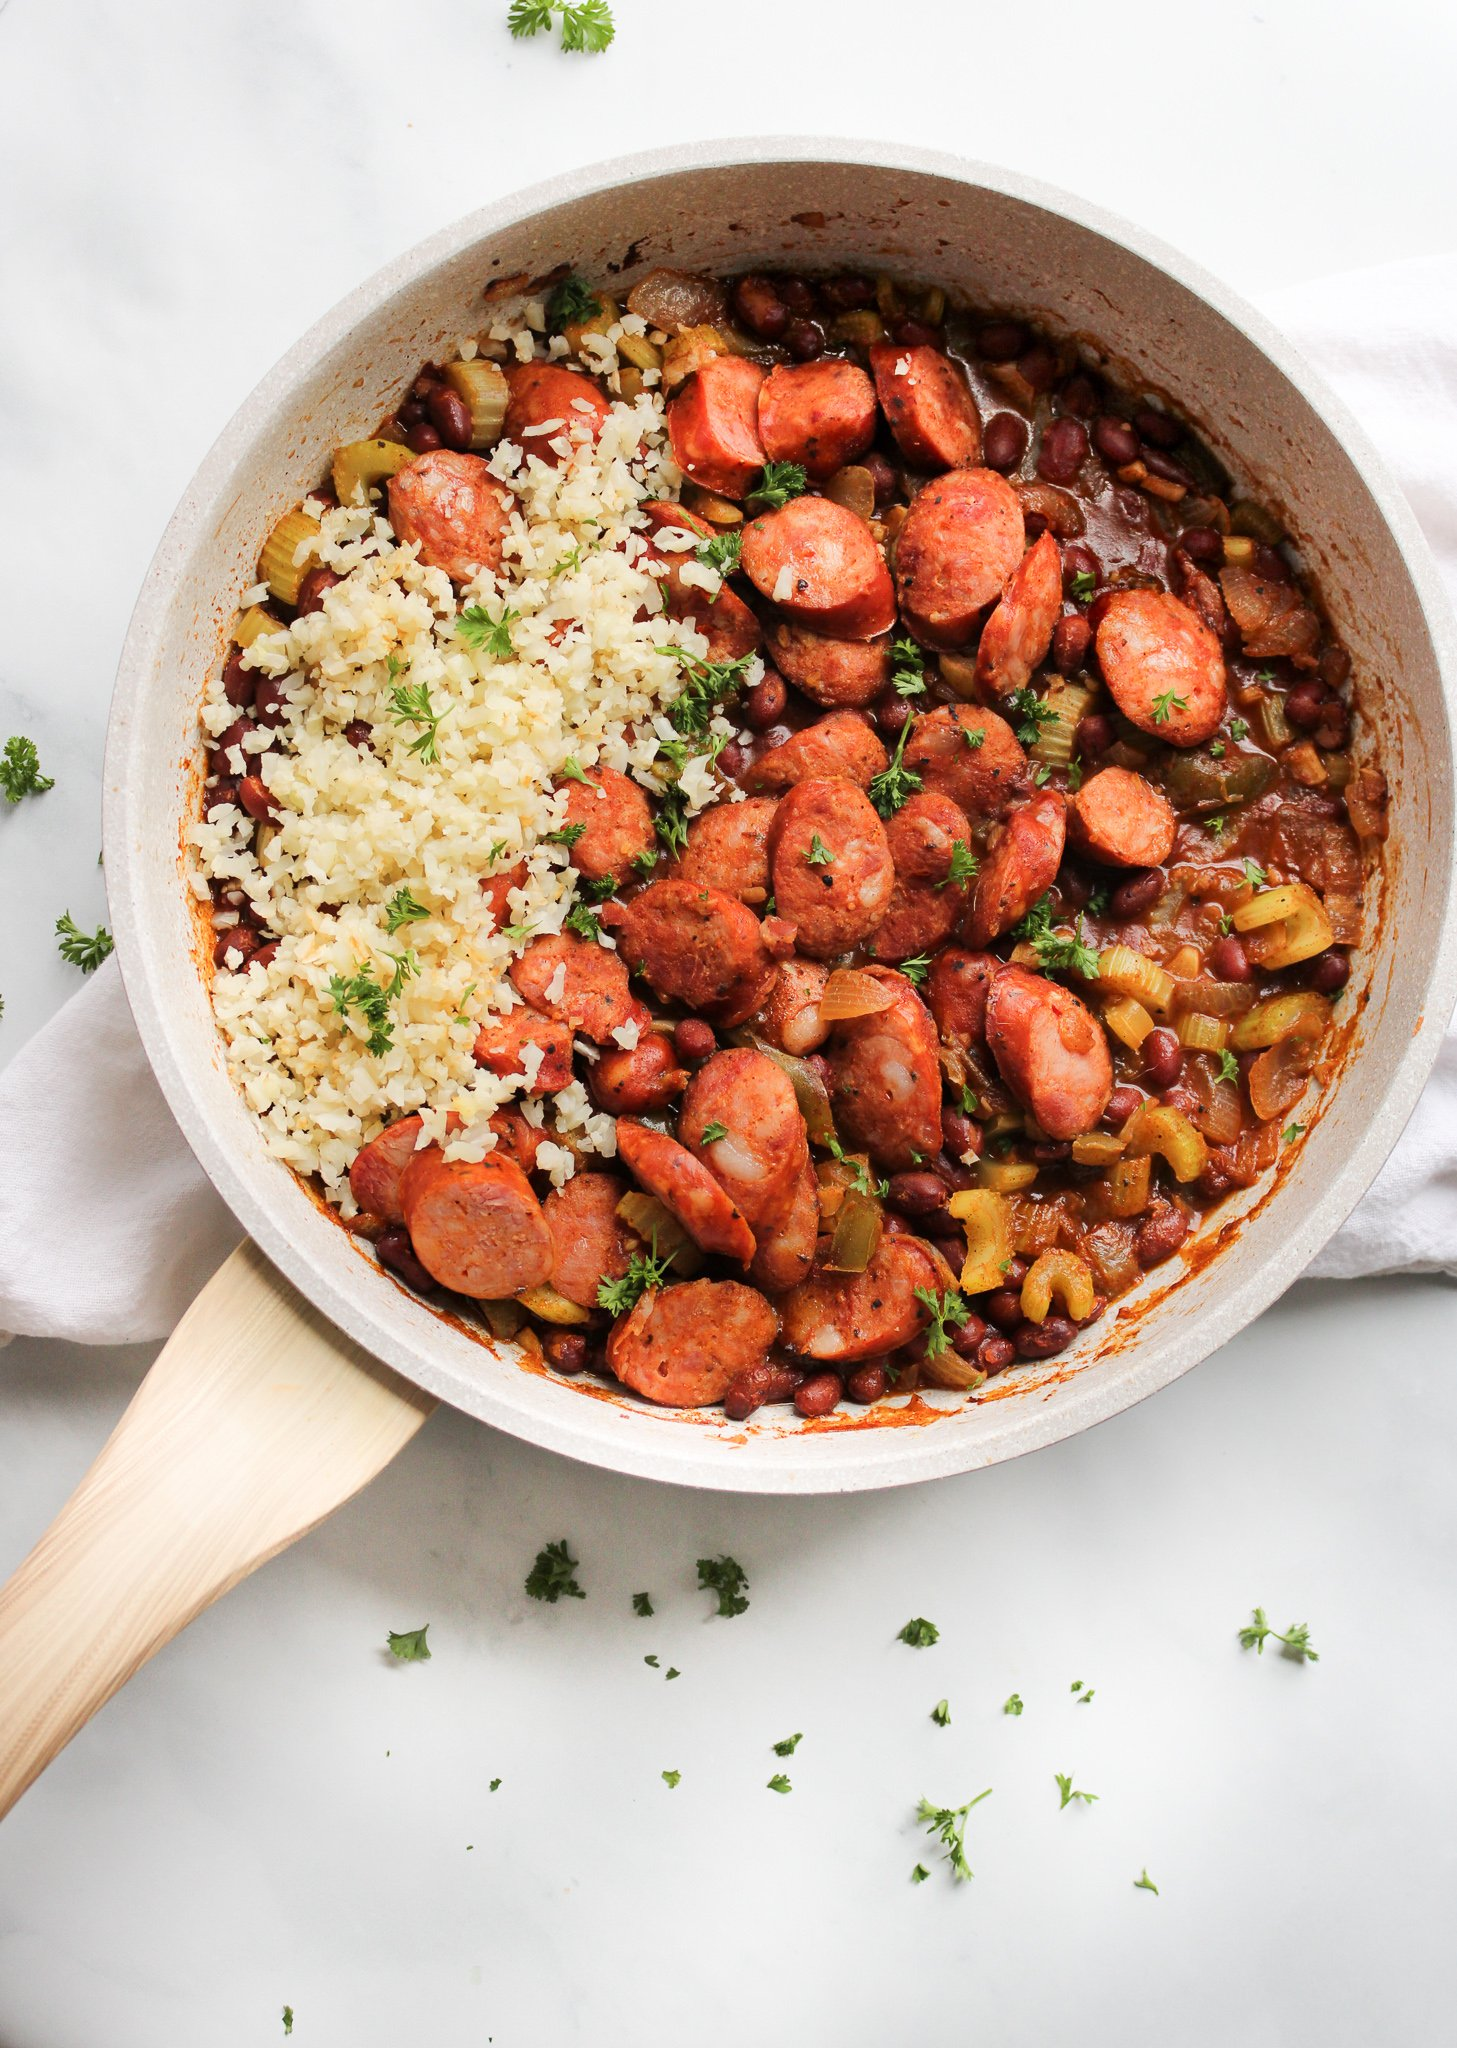 Louisiana style red beans and cauliflower rice in a white pan with a wooden handle sitting over a white table linen on a marble counter.